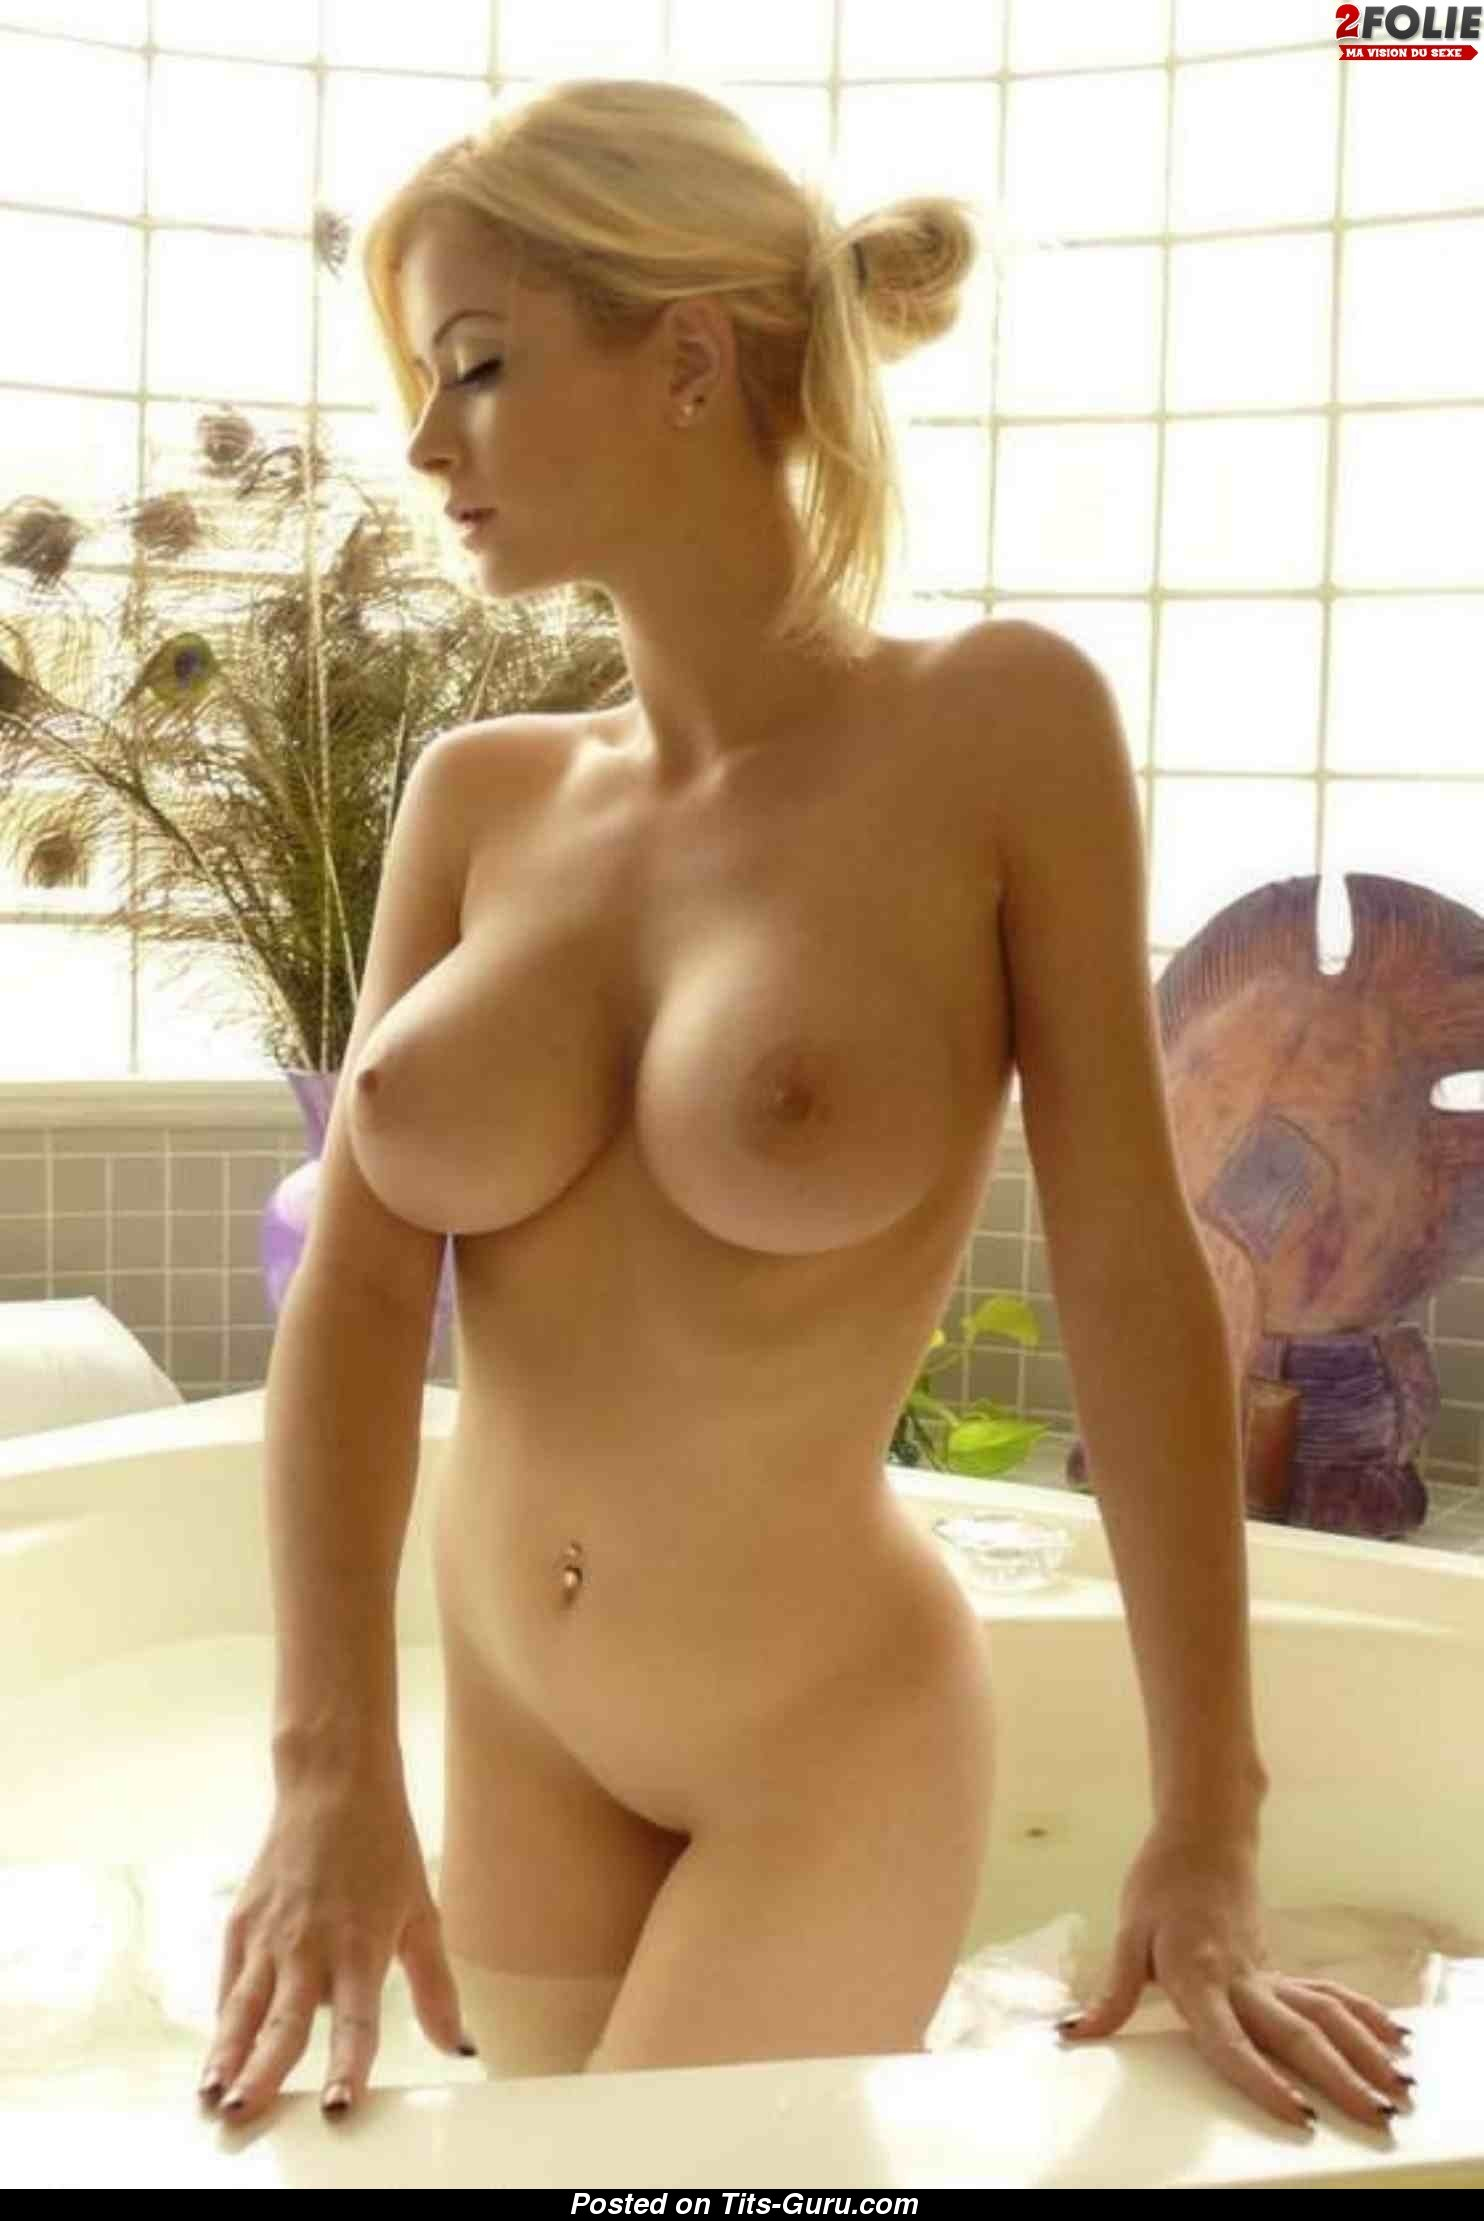 Blonde Tits Photos